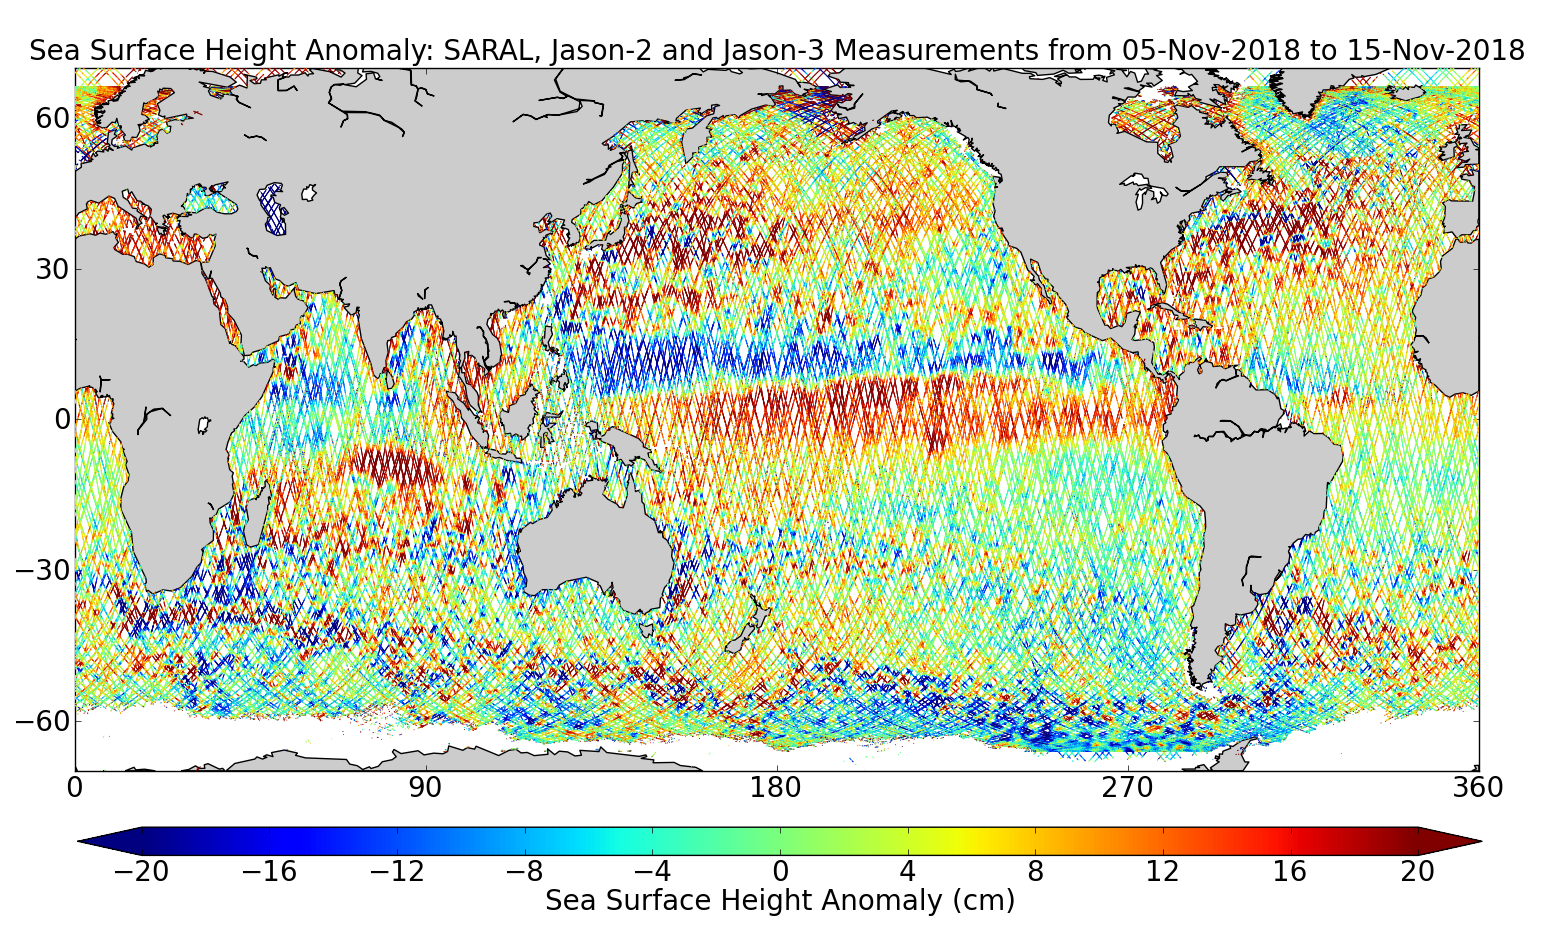 Sea Surface Height Anomaly: SARAL, Jason-2 and Jason-3 Measurements from 05-Nov-2018 to 15-Nov-2018